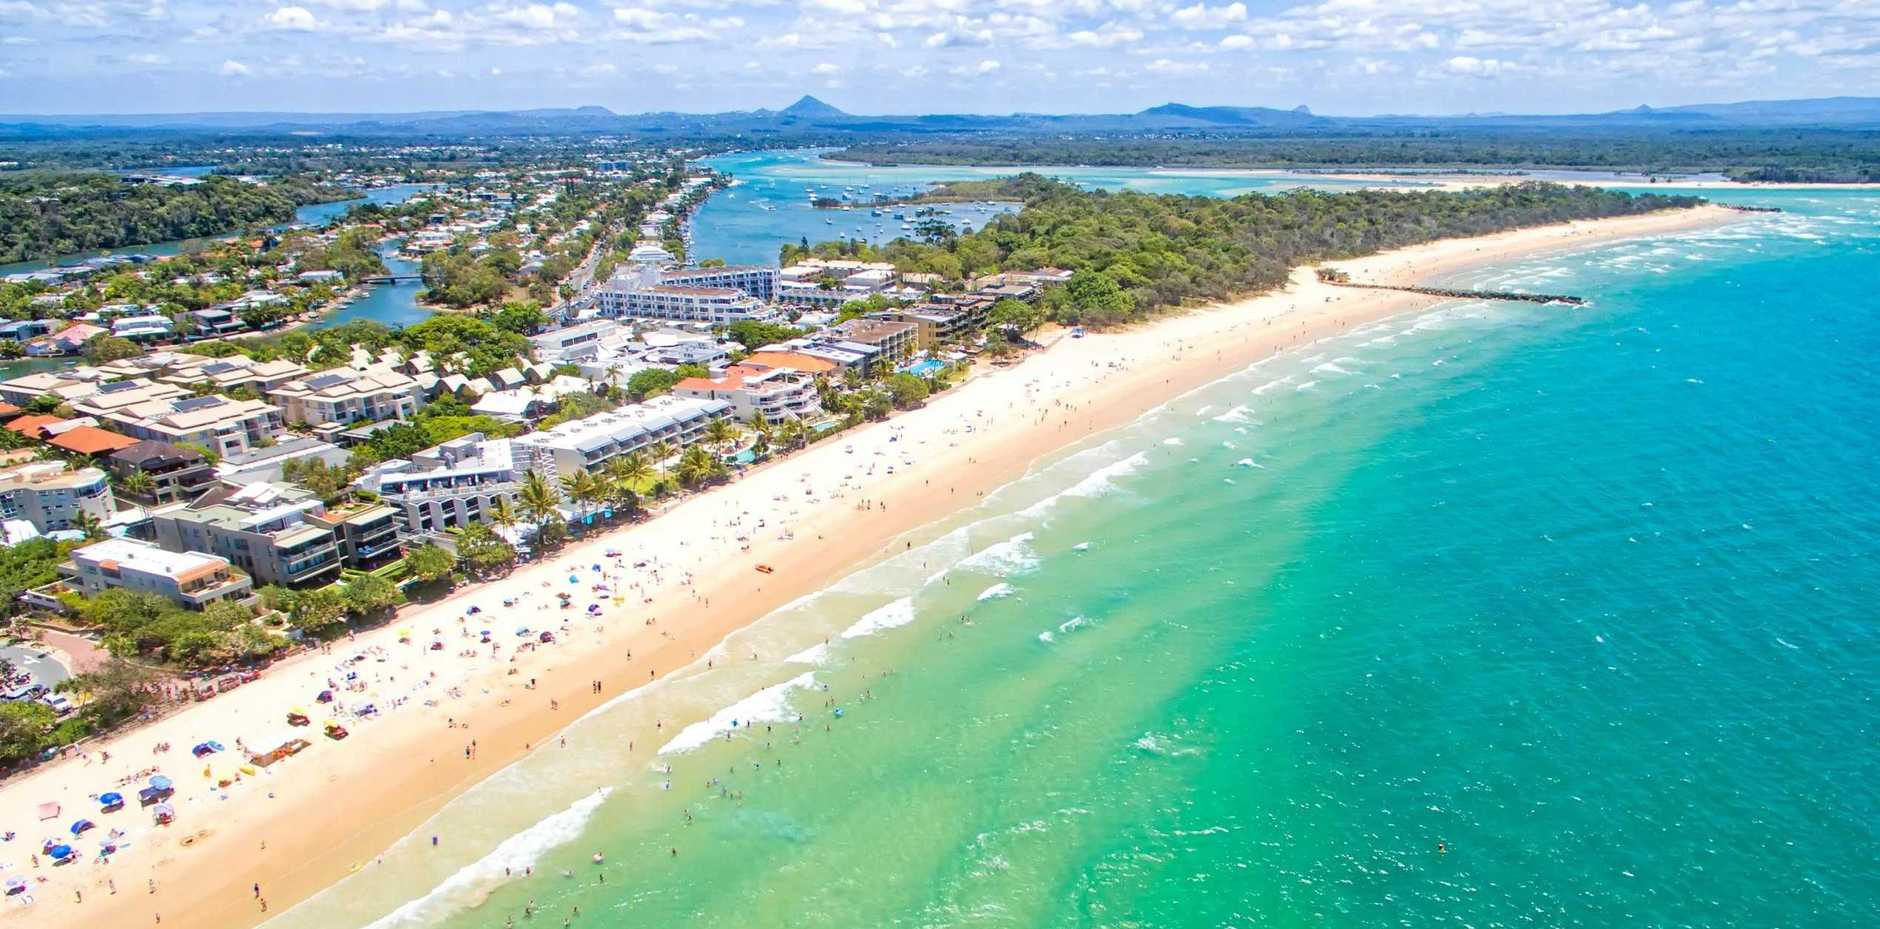 A climate change expert has applauded the Noosa Council for declaring a